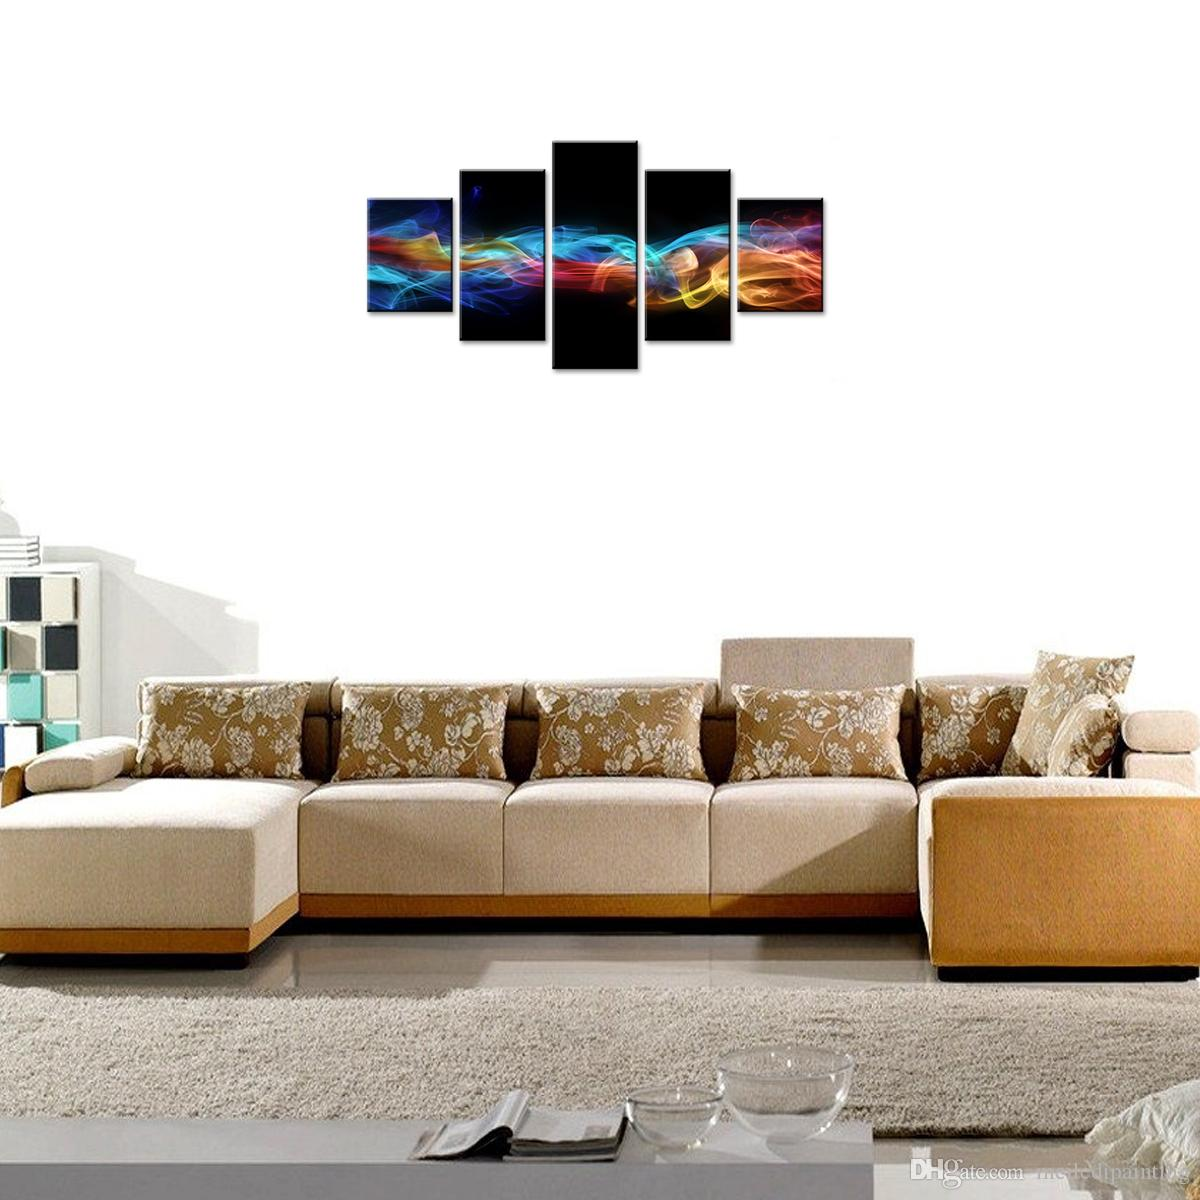 Amosi Art 5 Panels Abstract Canvas Print Wall Art Colorful Cloud and Smoke Ribbon Painting Decor Wall Picture for Home Living Room Framed